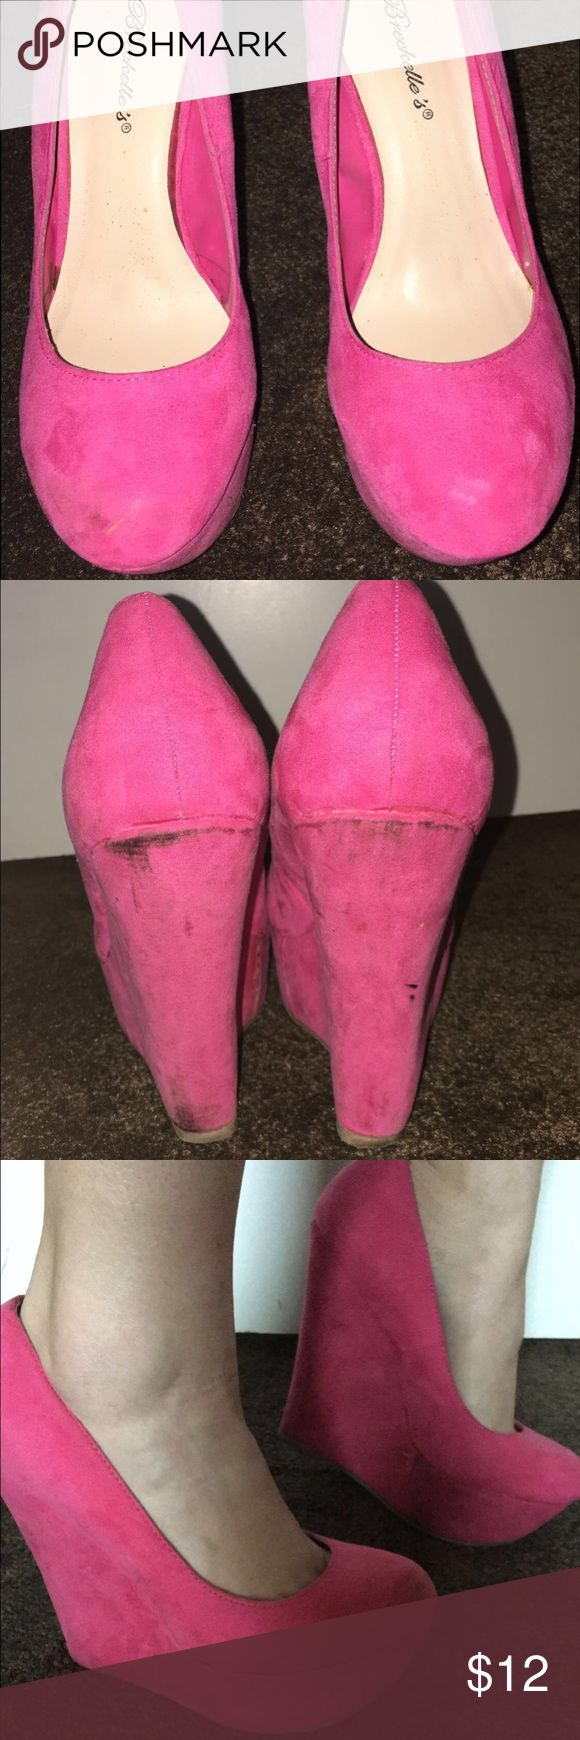 Cute hot pink wedges 💖 Barbie hot pink wedges, very comfortable about 5-6 inches high...perfect for any plain outfit for that pop of color, they are a little worn  with some damage on the side and back as you can see. Breckelles Shoes Wedges